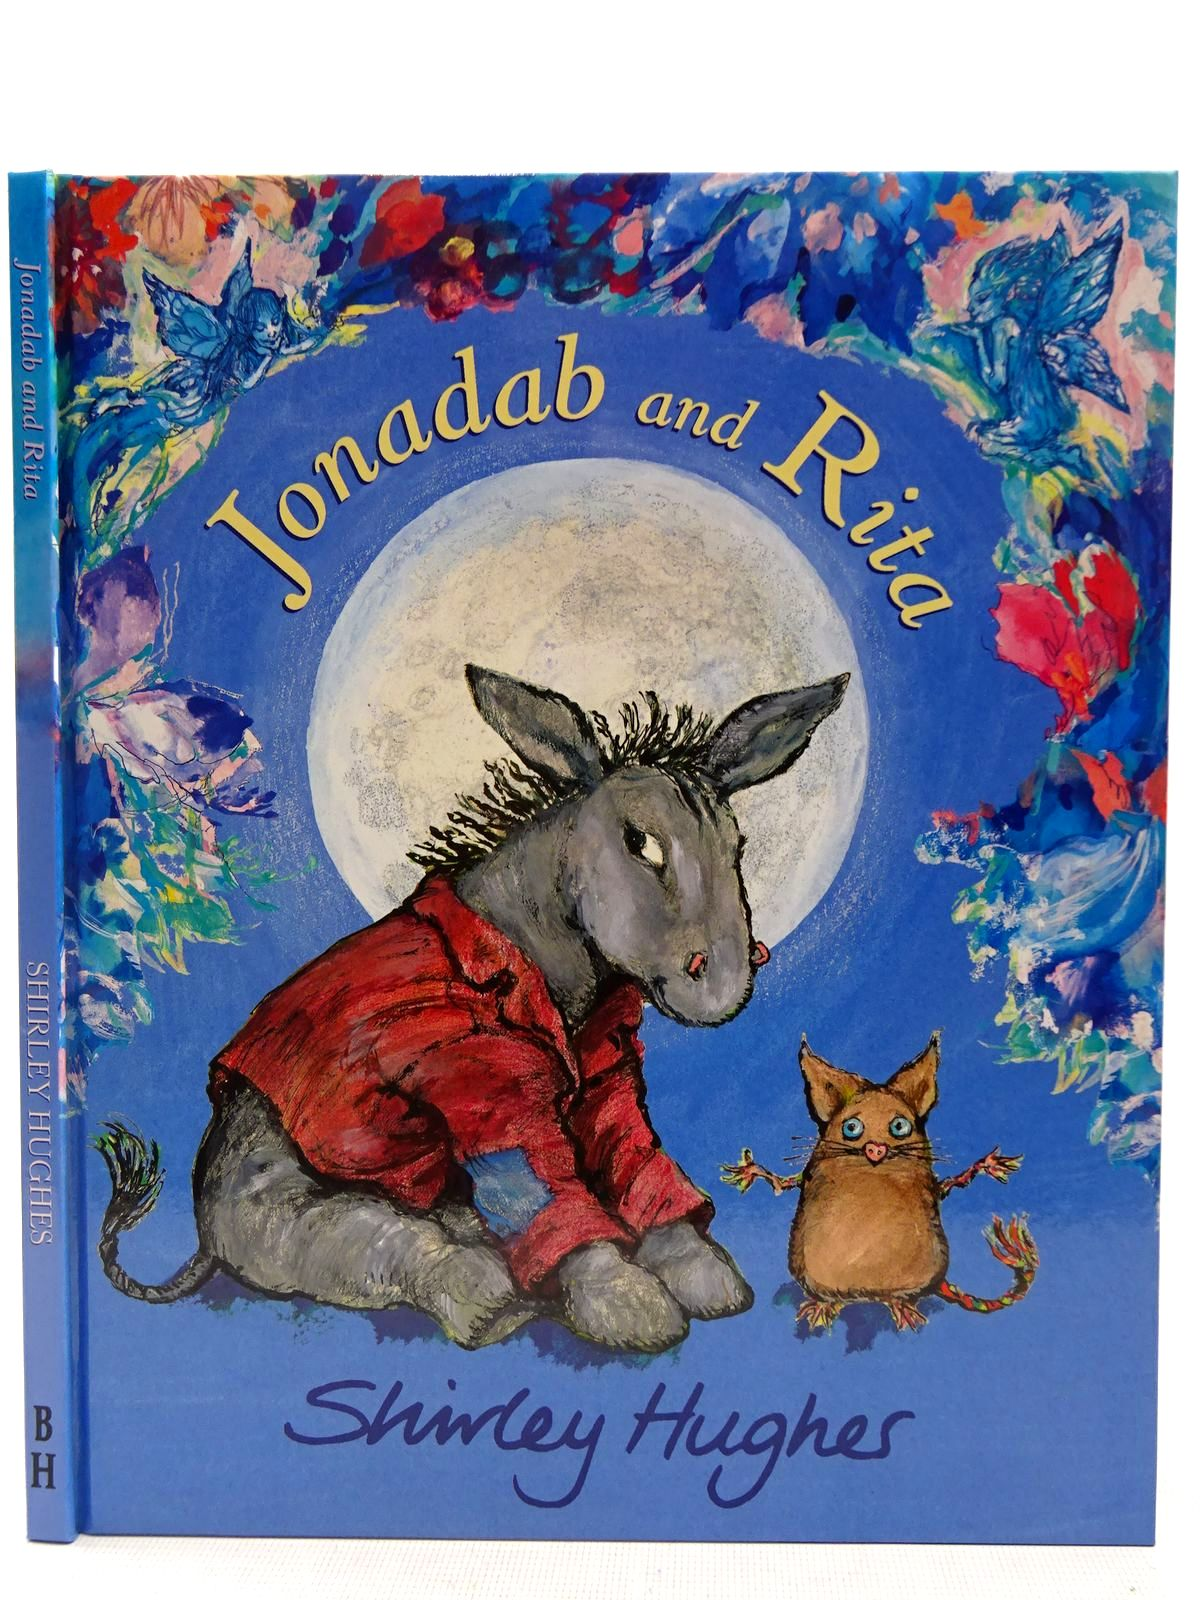 Photo of JONADAB AND RITA written by Hughes, Shirley illustrated by Hughes, Shirley published by The Bodley Head (STOCK CODE: 2128540)  for sale by Stella & Rose's Books